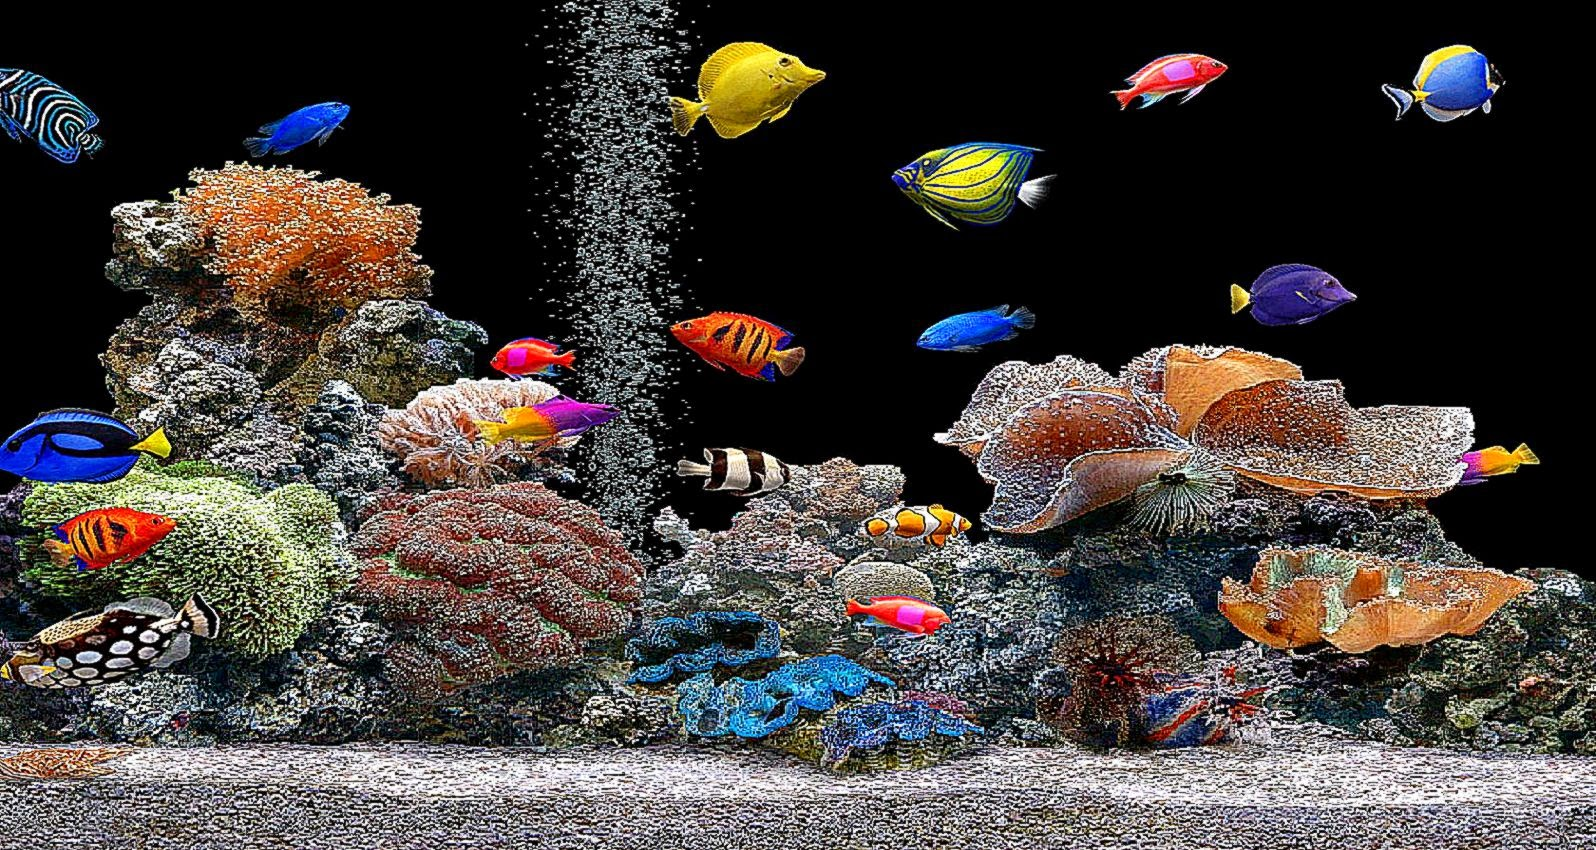 3d aquarium screensaver wallpaper best free hd wallpaper